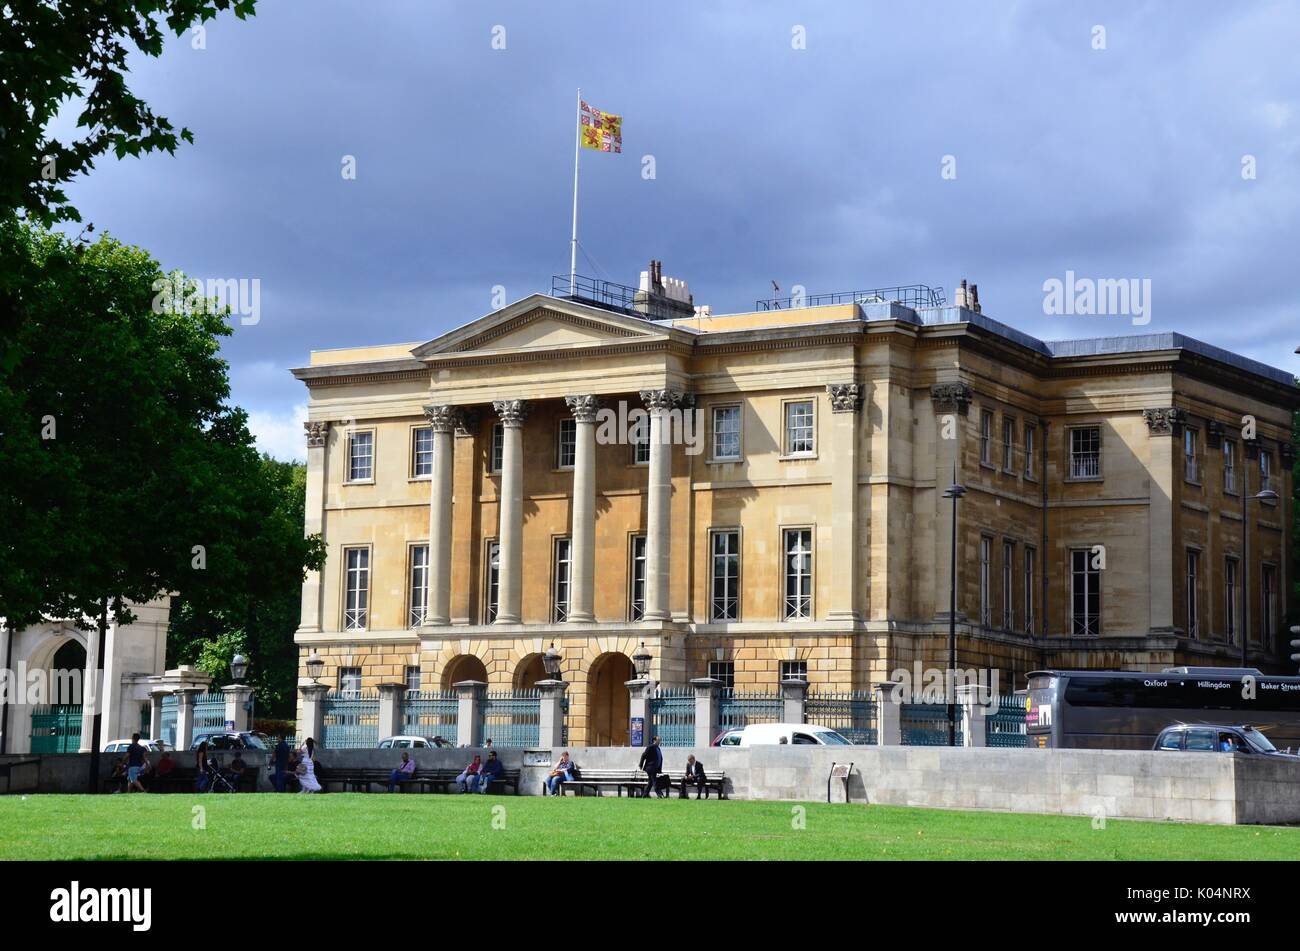 Apsley House, Hyde Park Corner, London, England - Stock Image